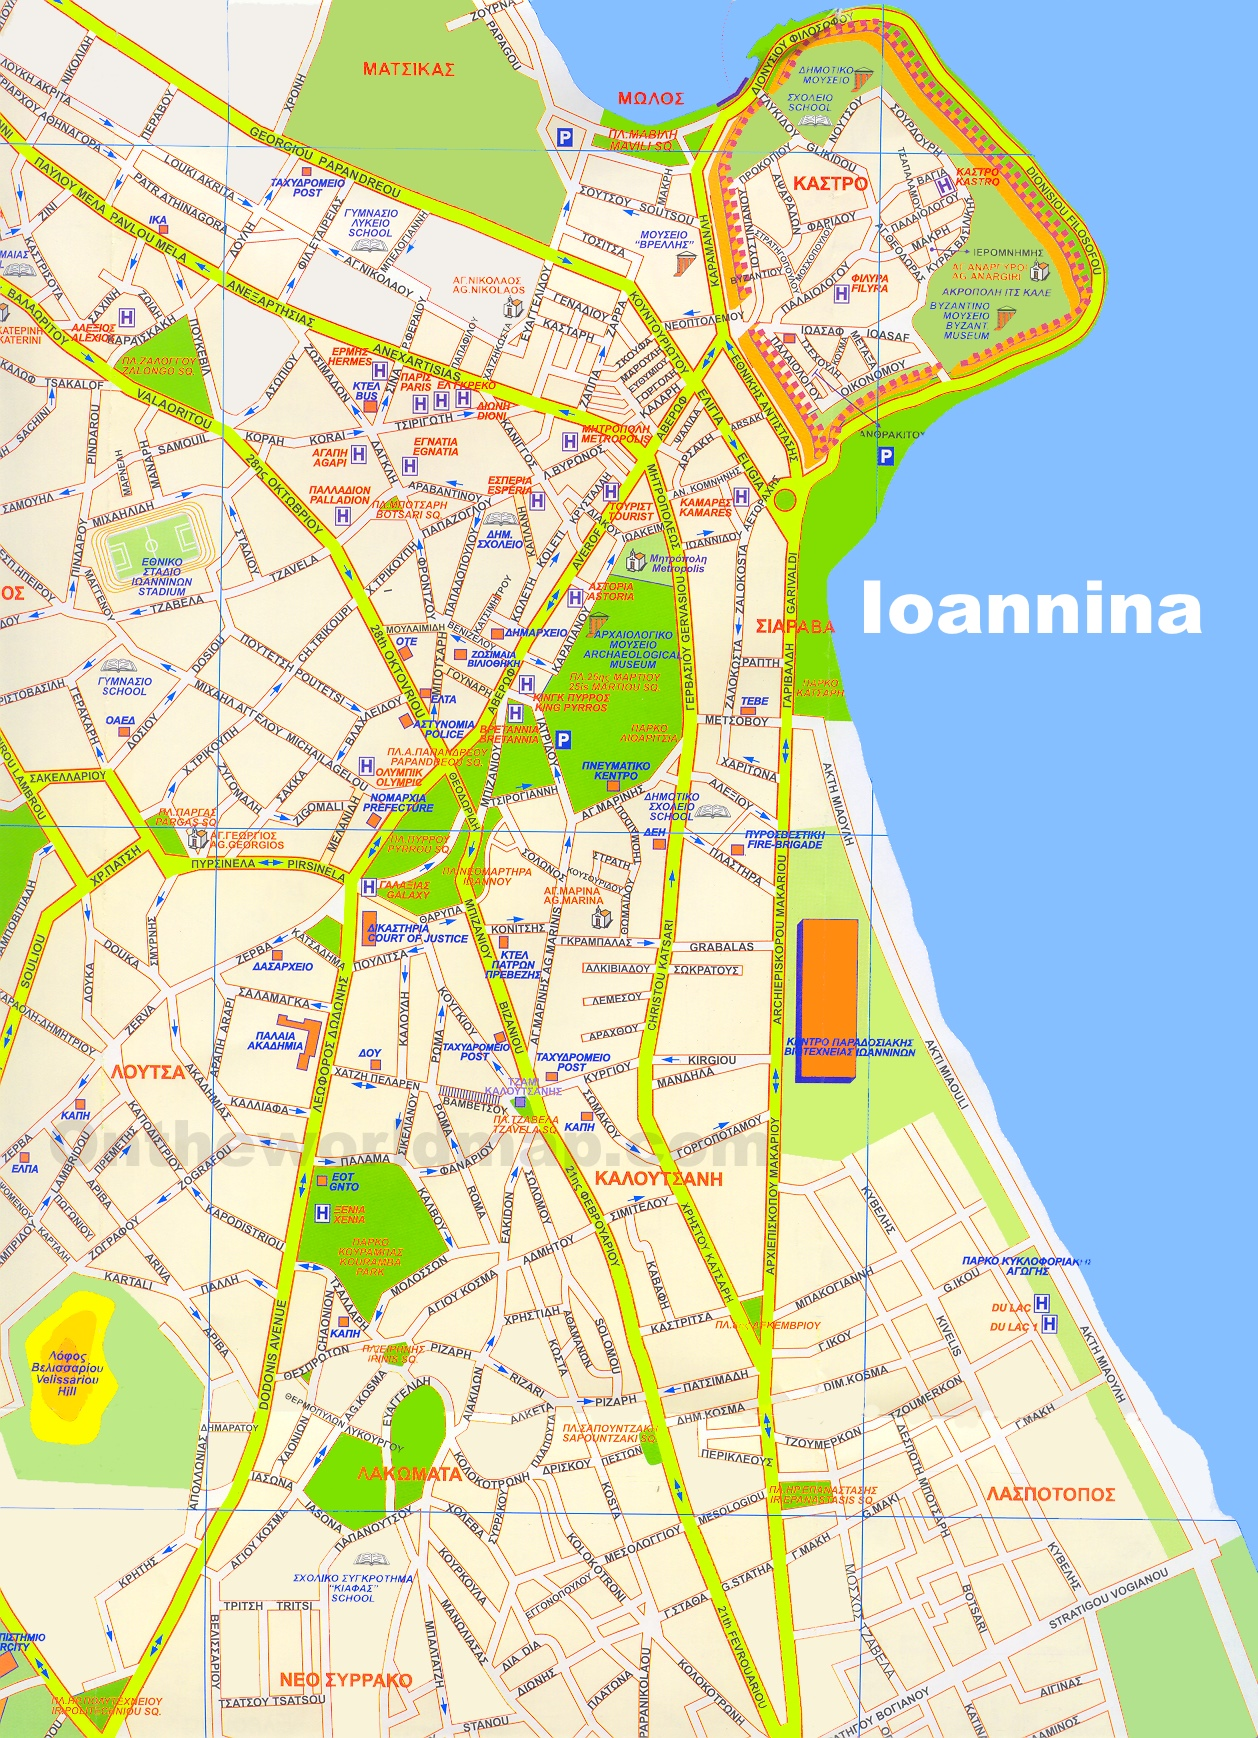 Ioannina hotels and sightseeings map